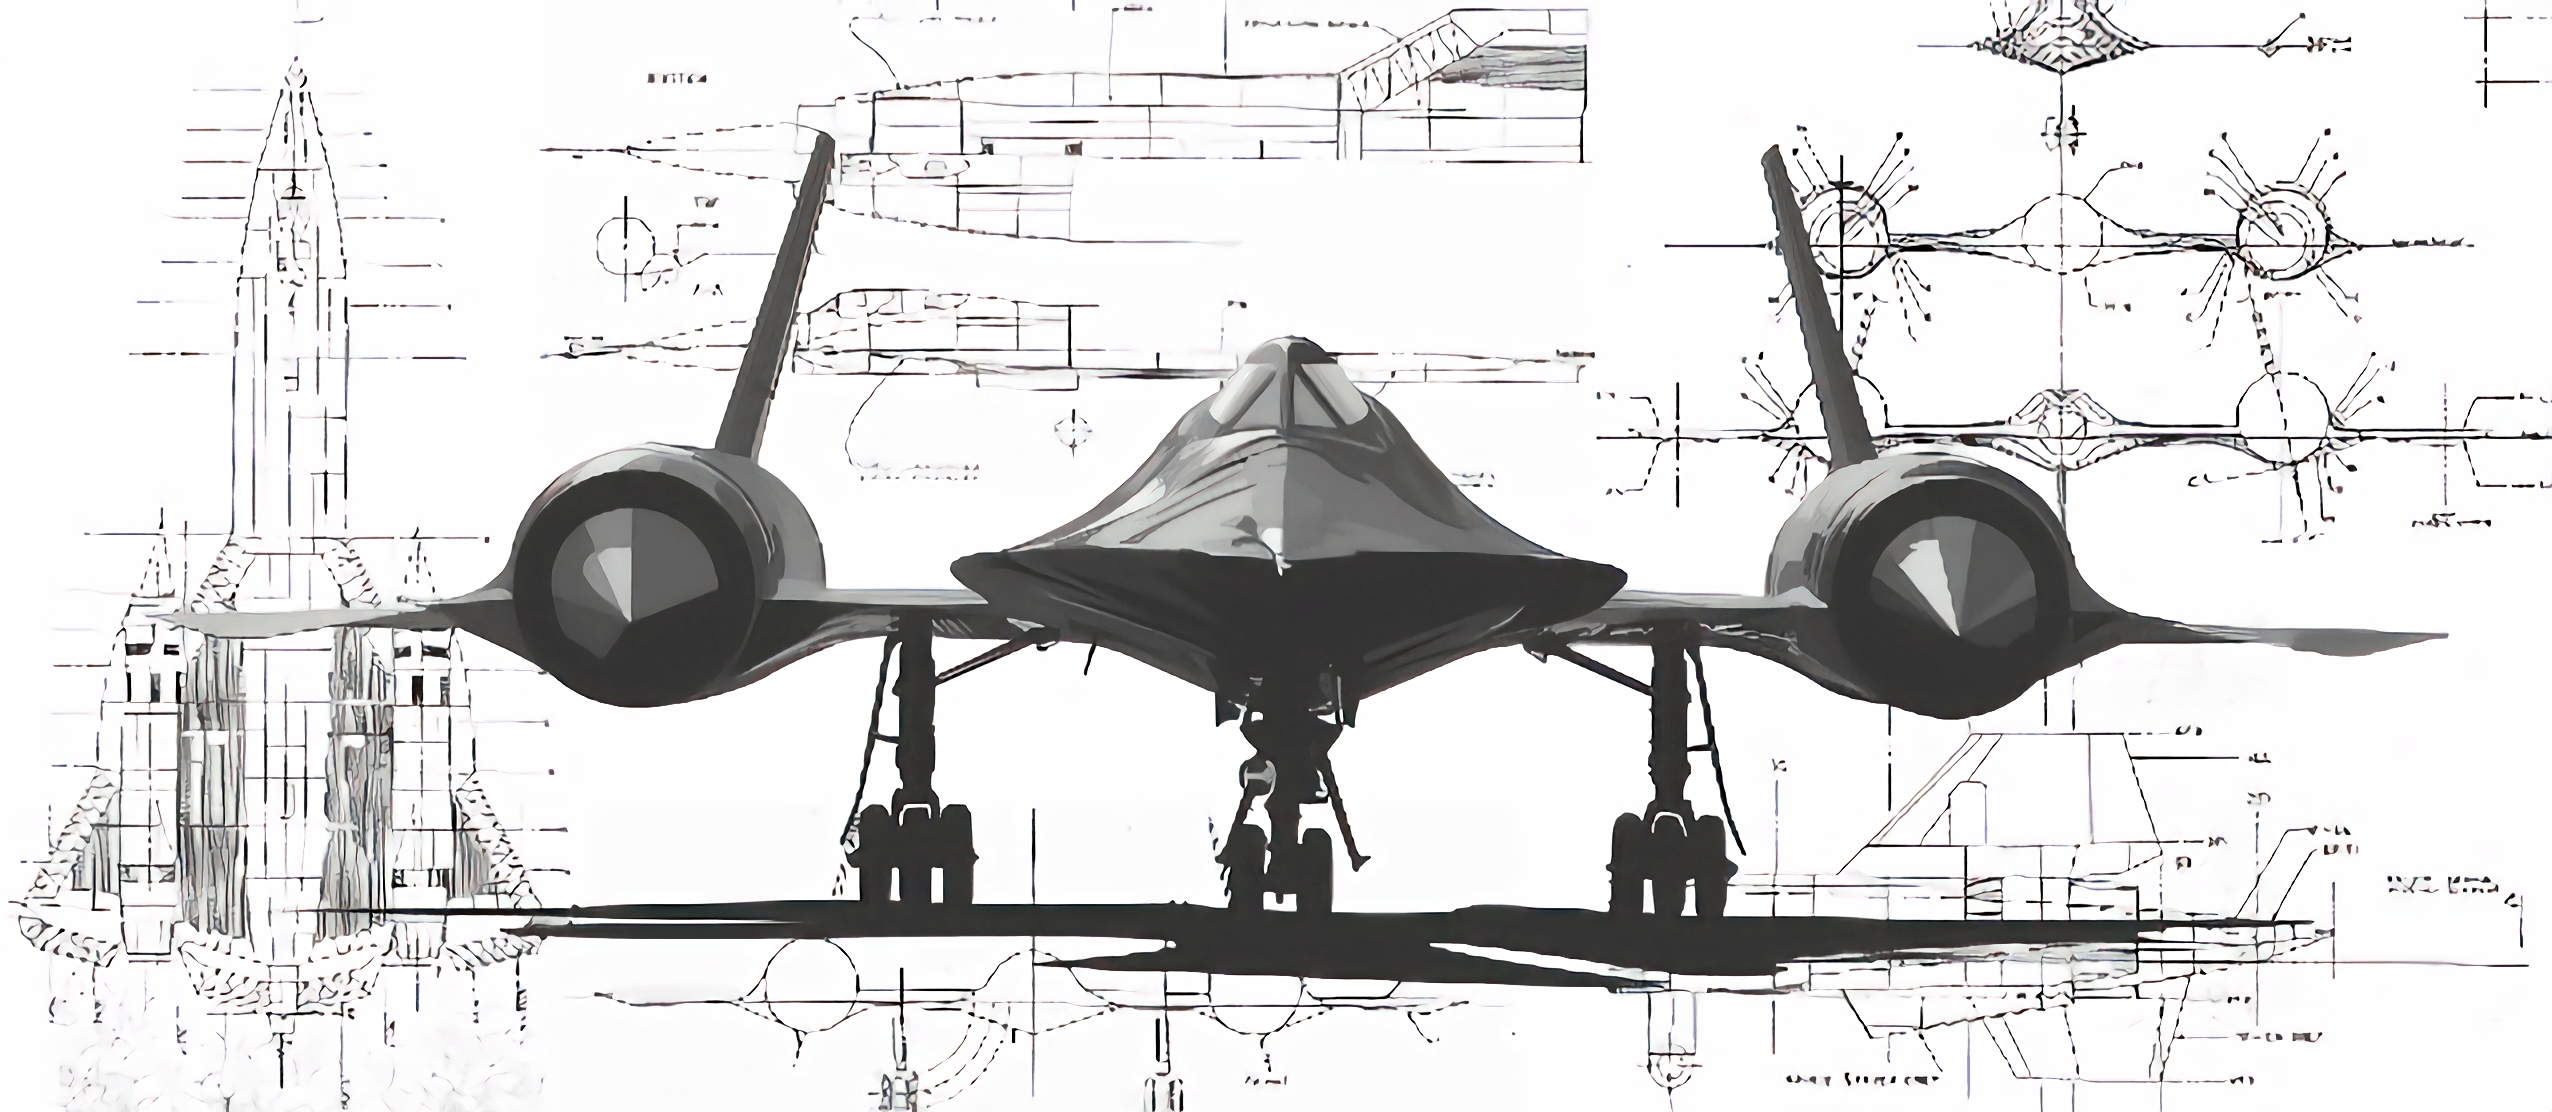 Sr 71 Schematics X Wallpapers